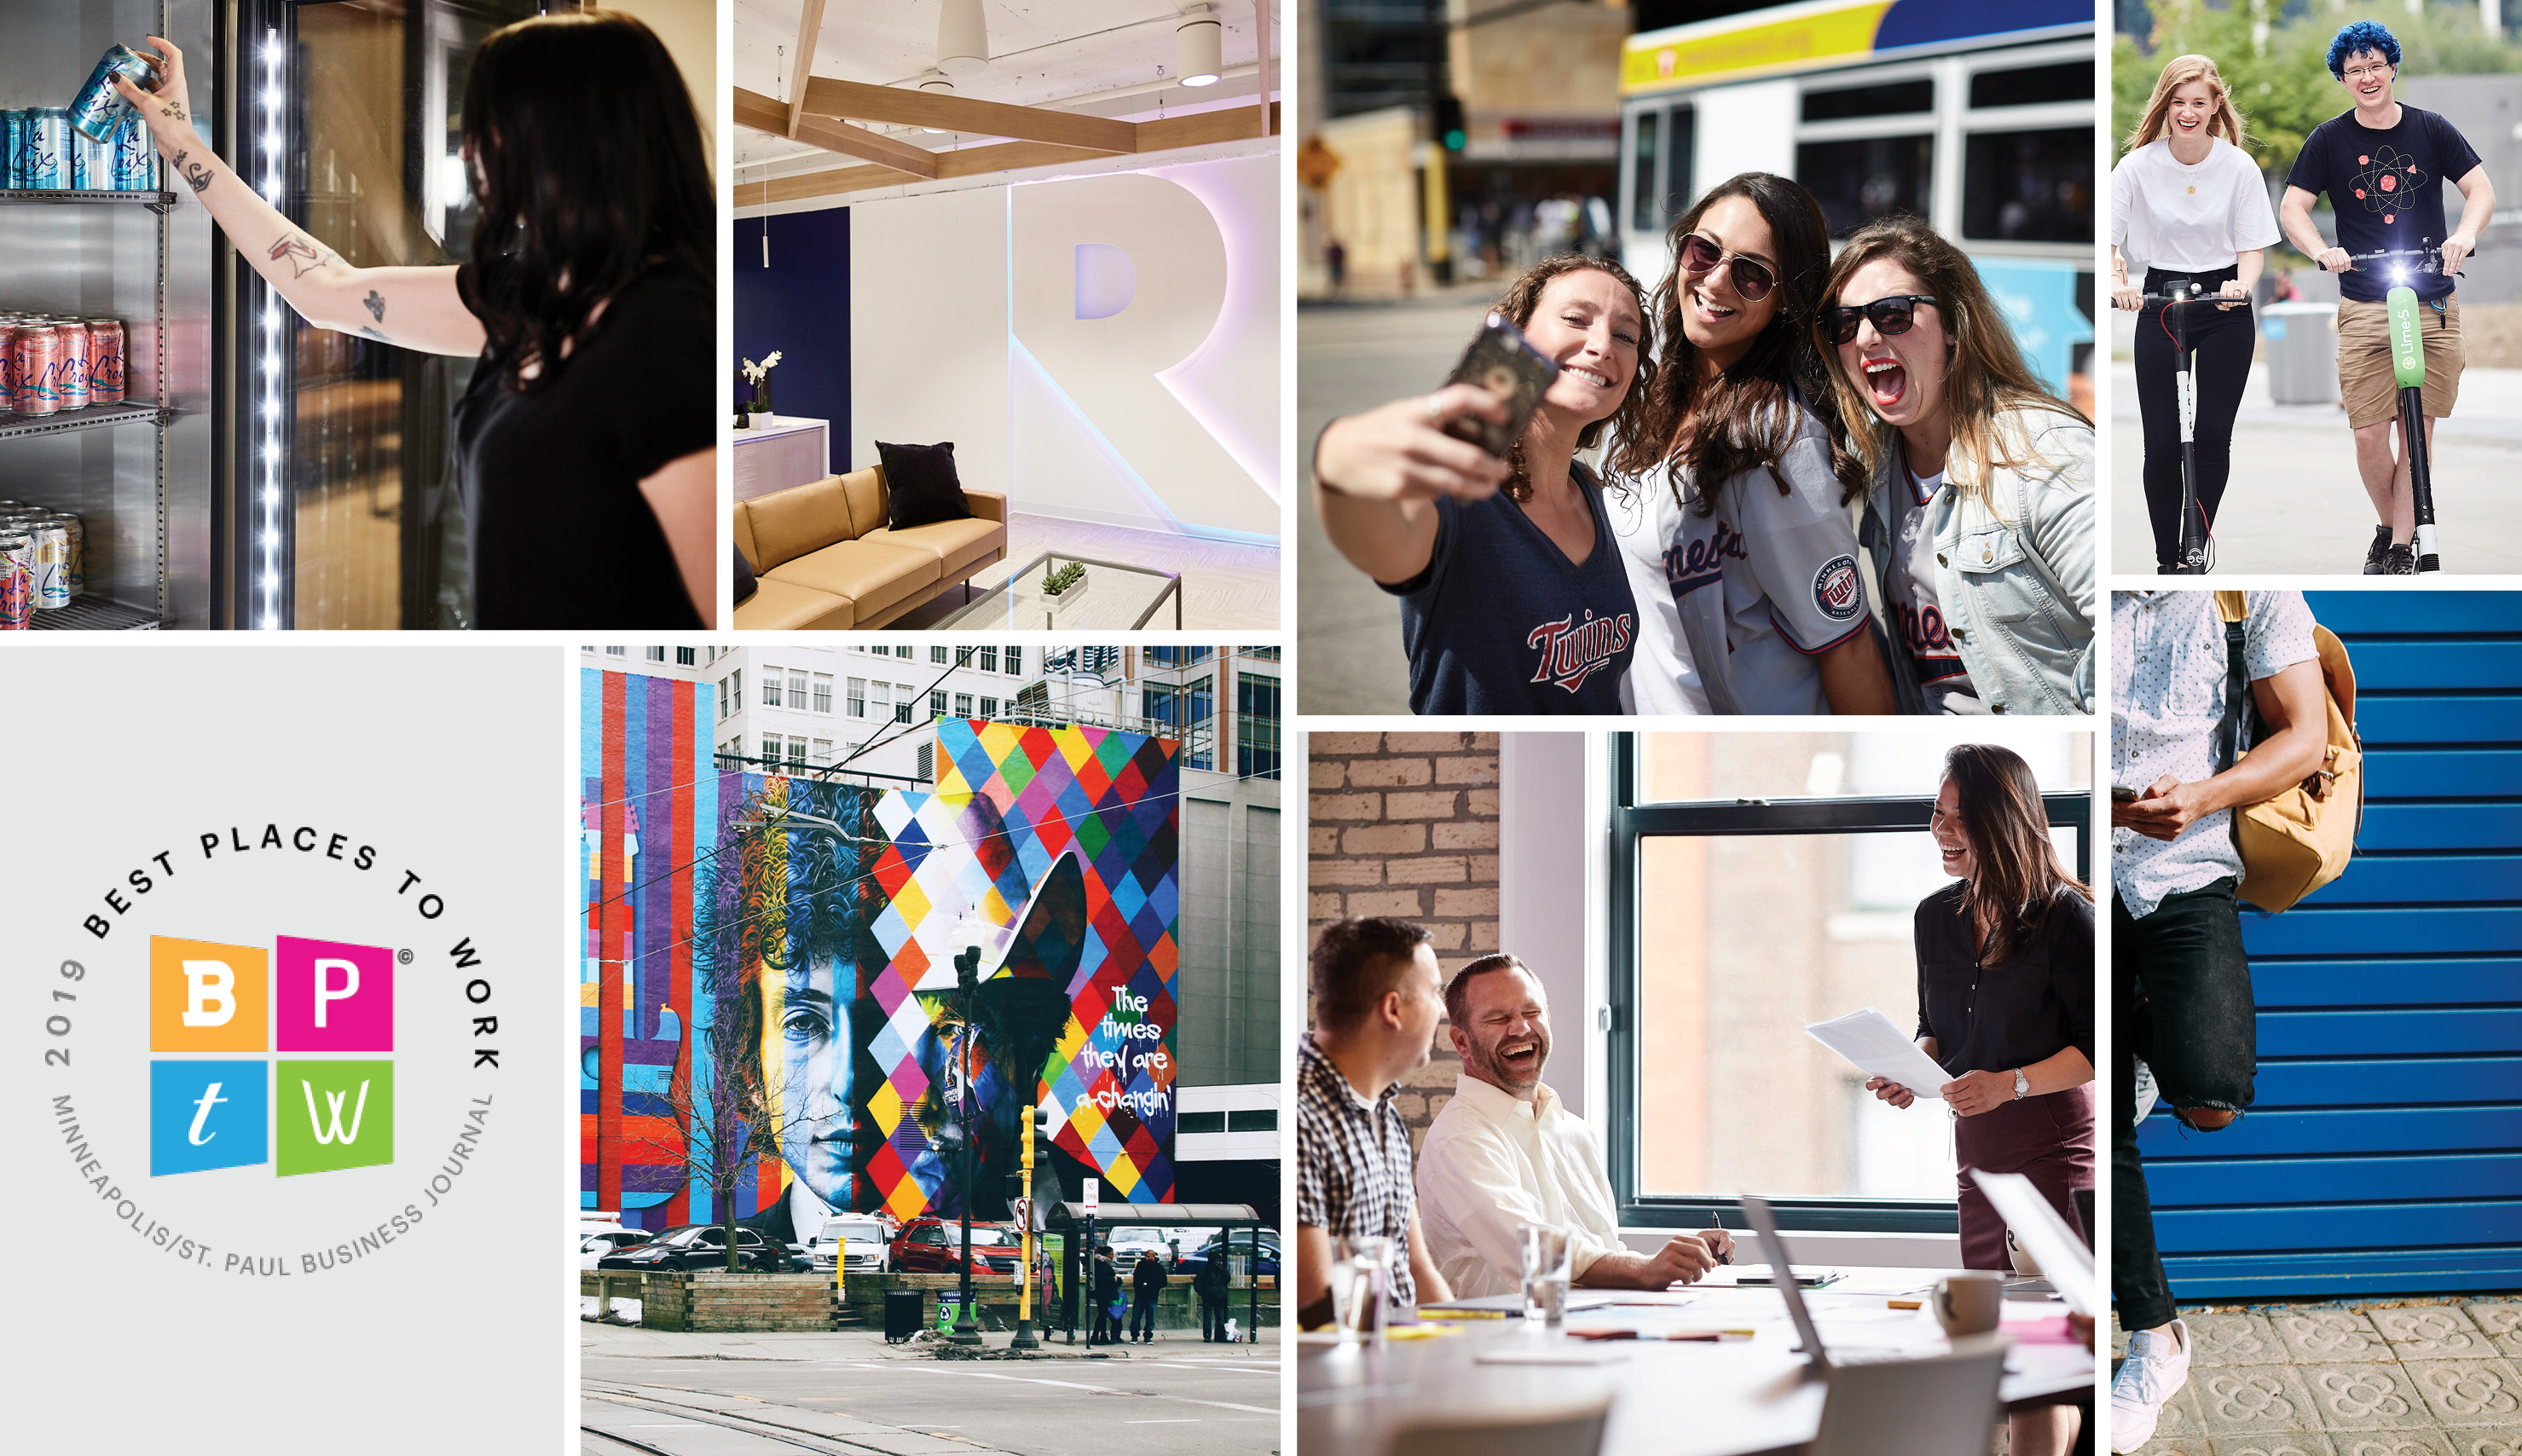 Revel Named 2019 Best Place to Work by Minneapolis/St. Paul Business Journal